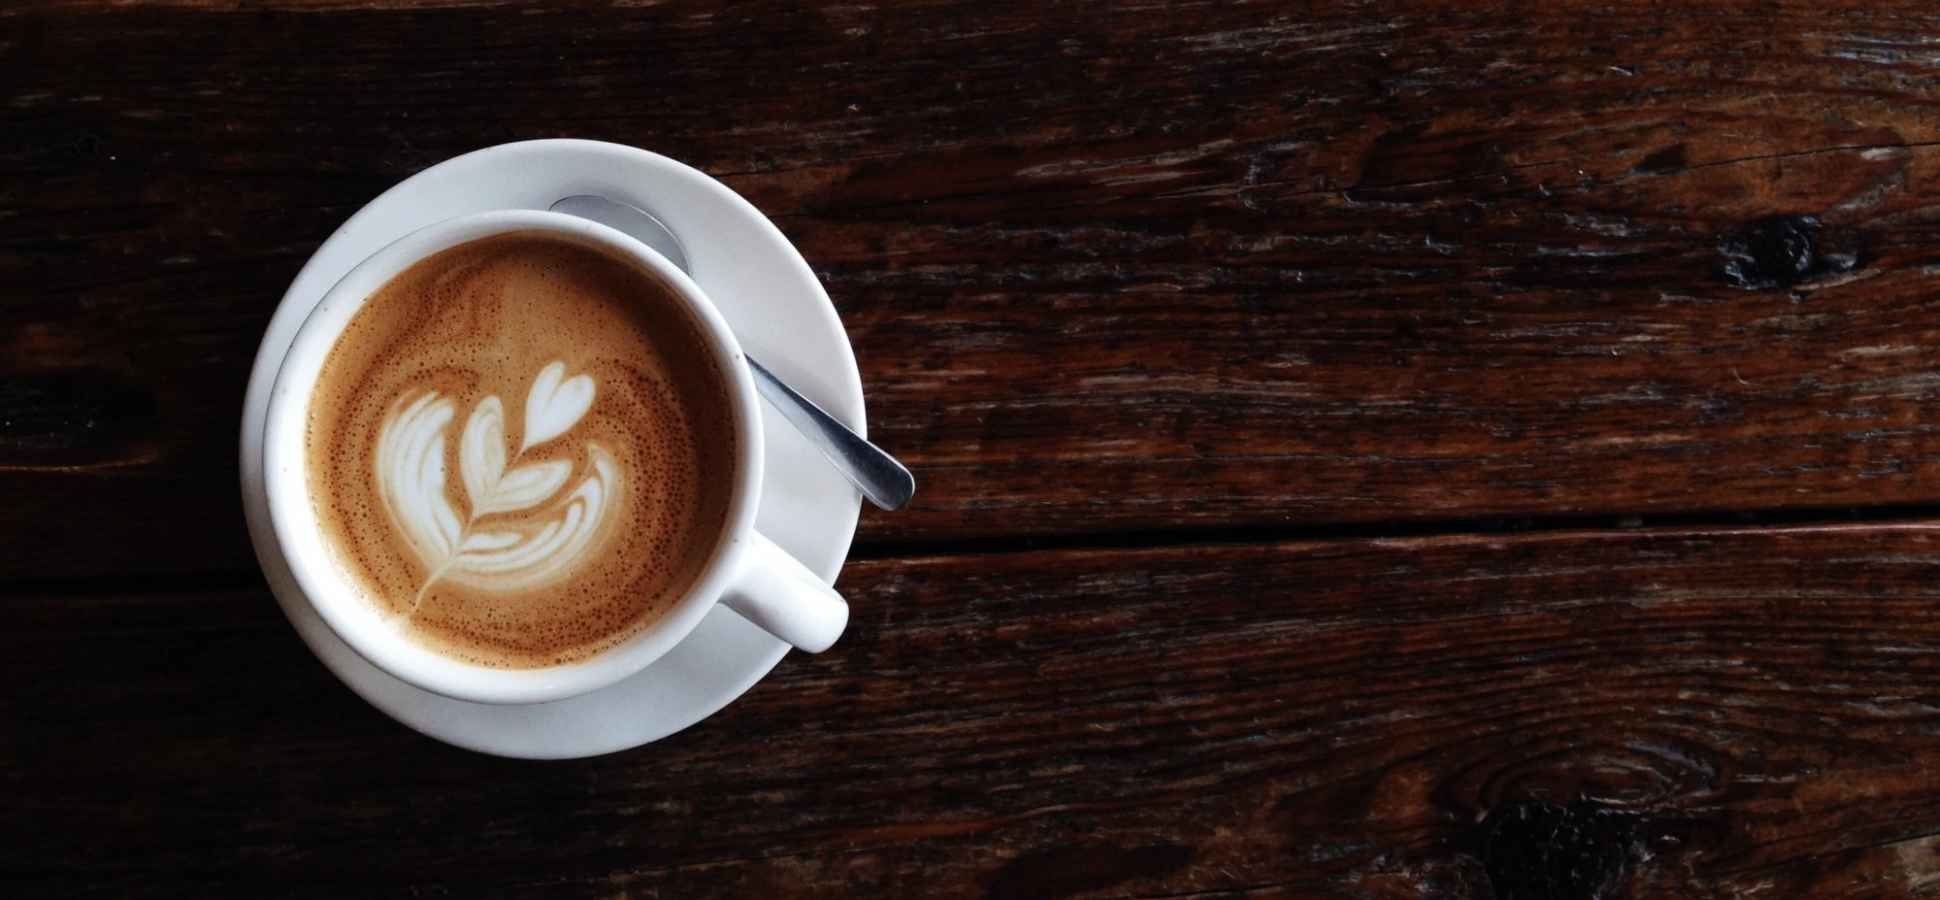 When It Comes to Drinking Coffee, Science Confirms Common Sense